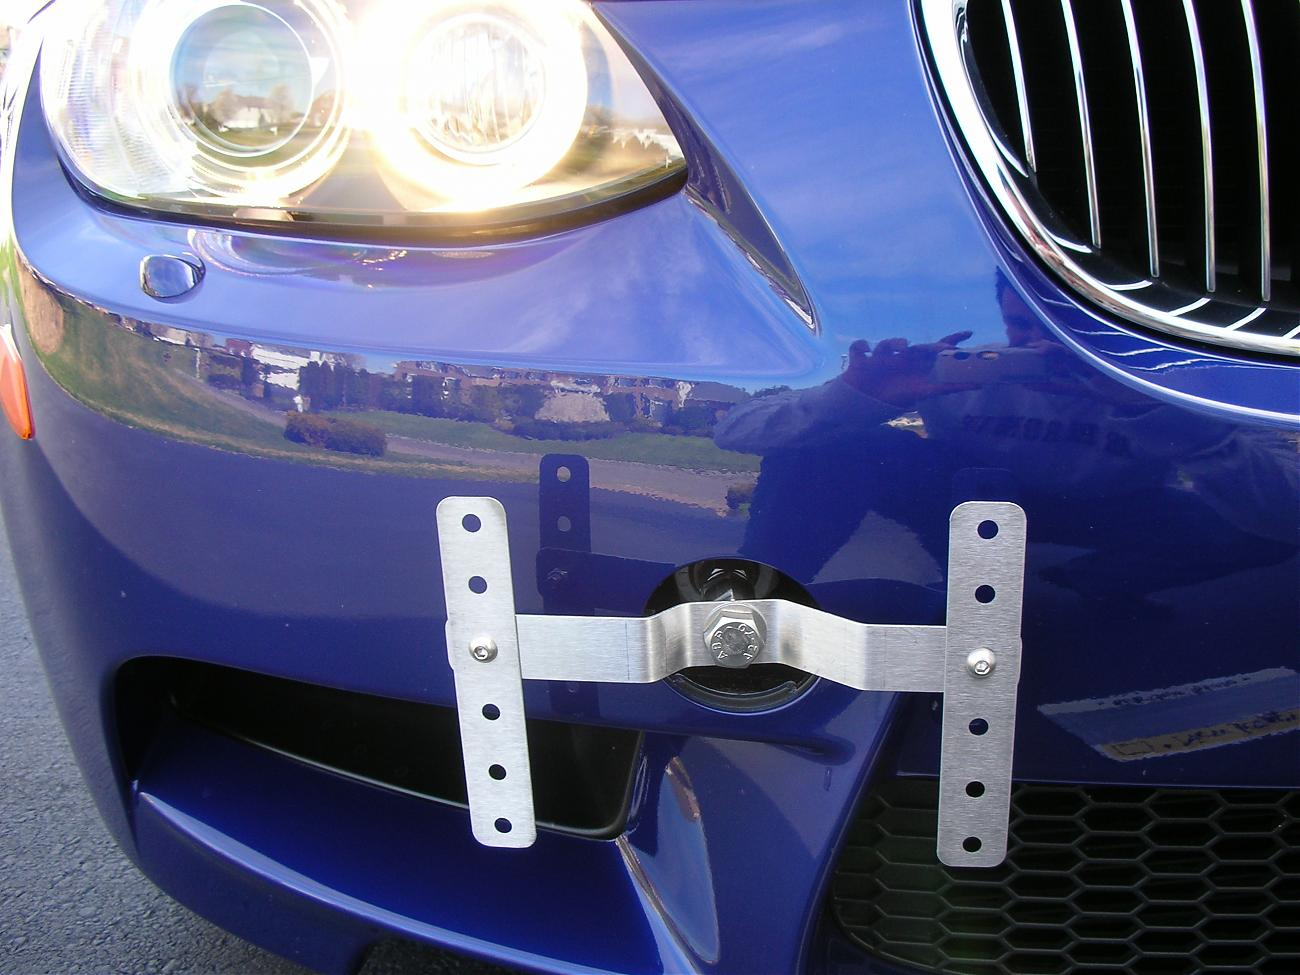 Alternative to mounting front license plate